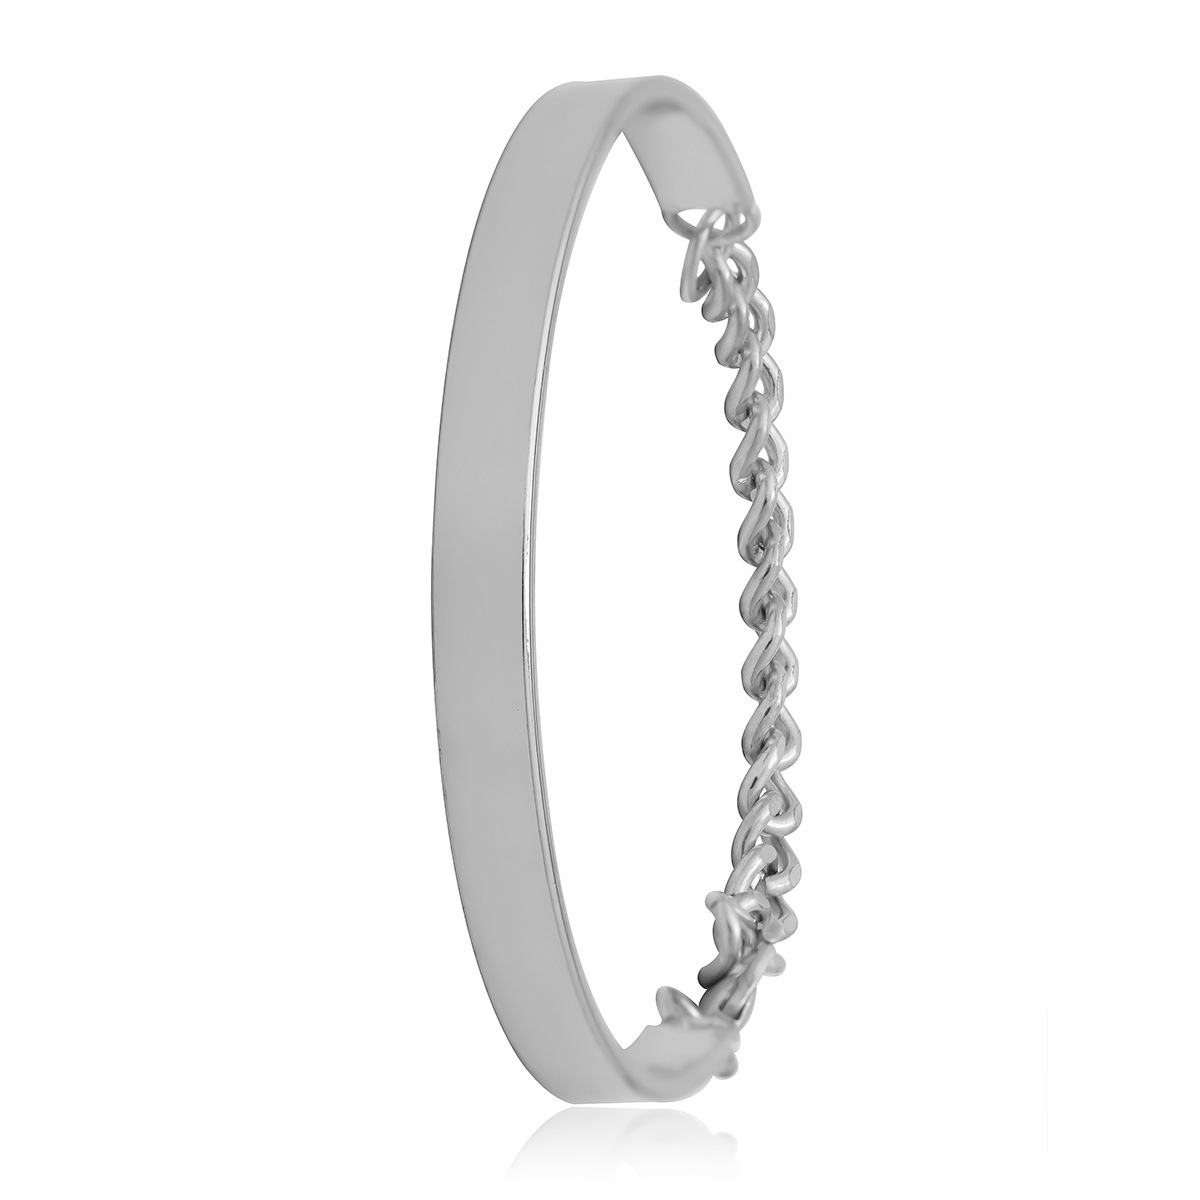 Cold wind business versatile metal jewelry NHXR135990